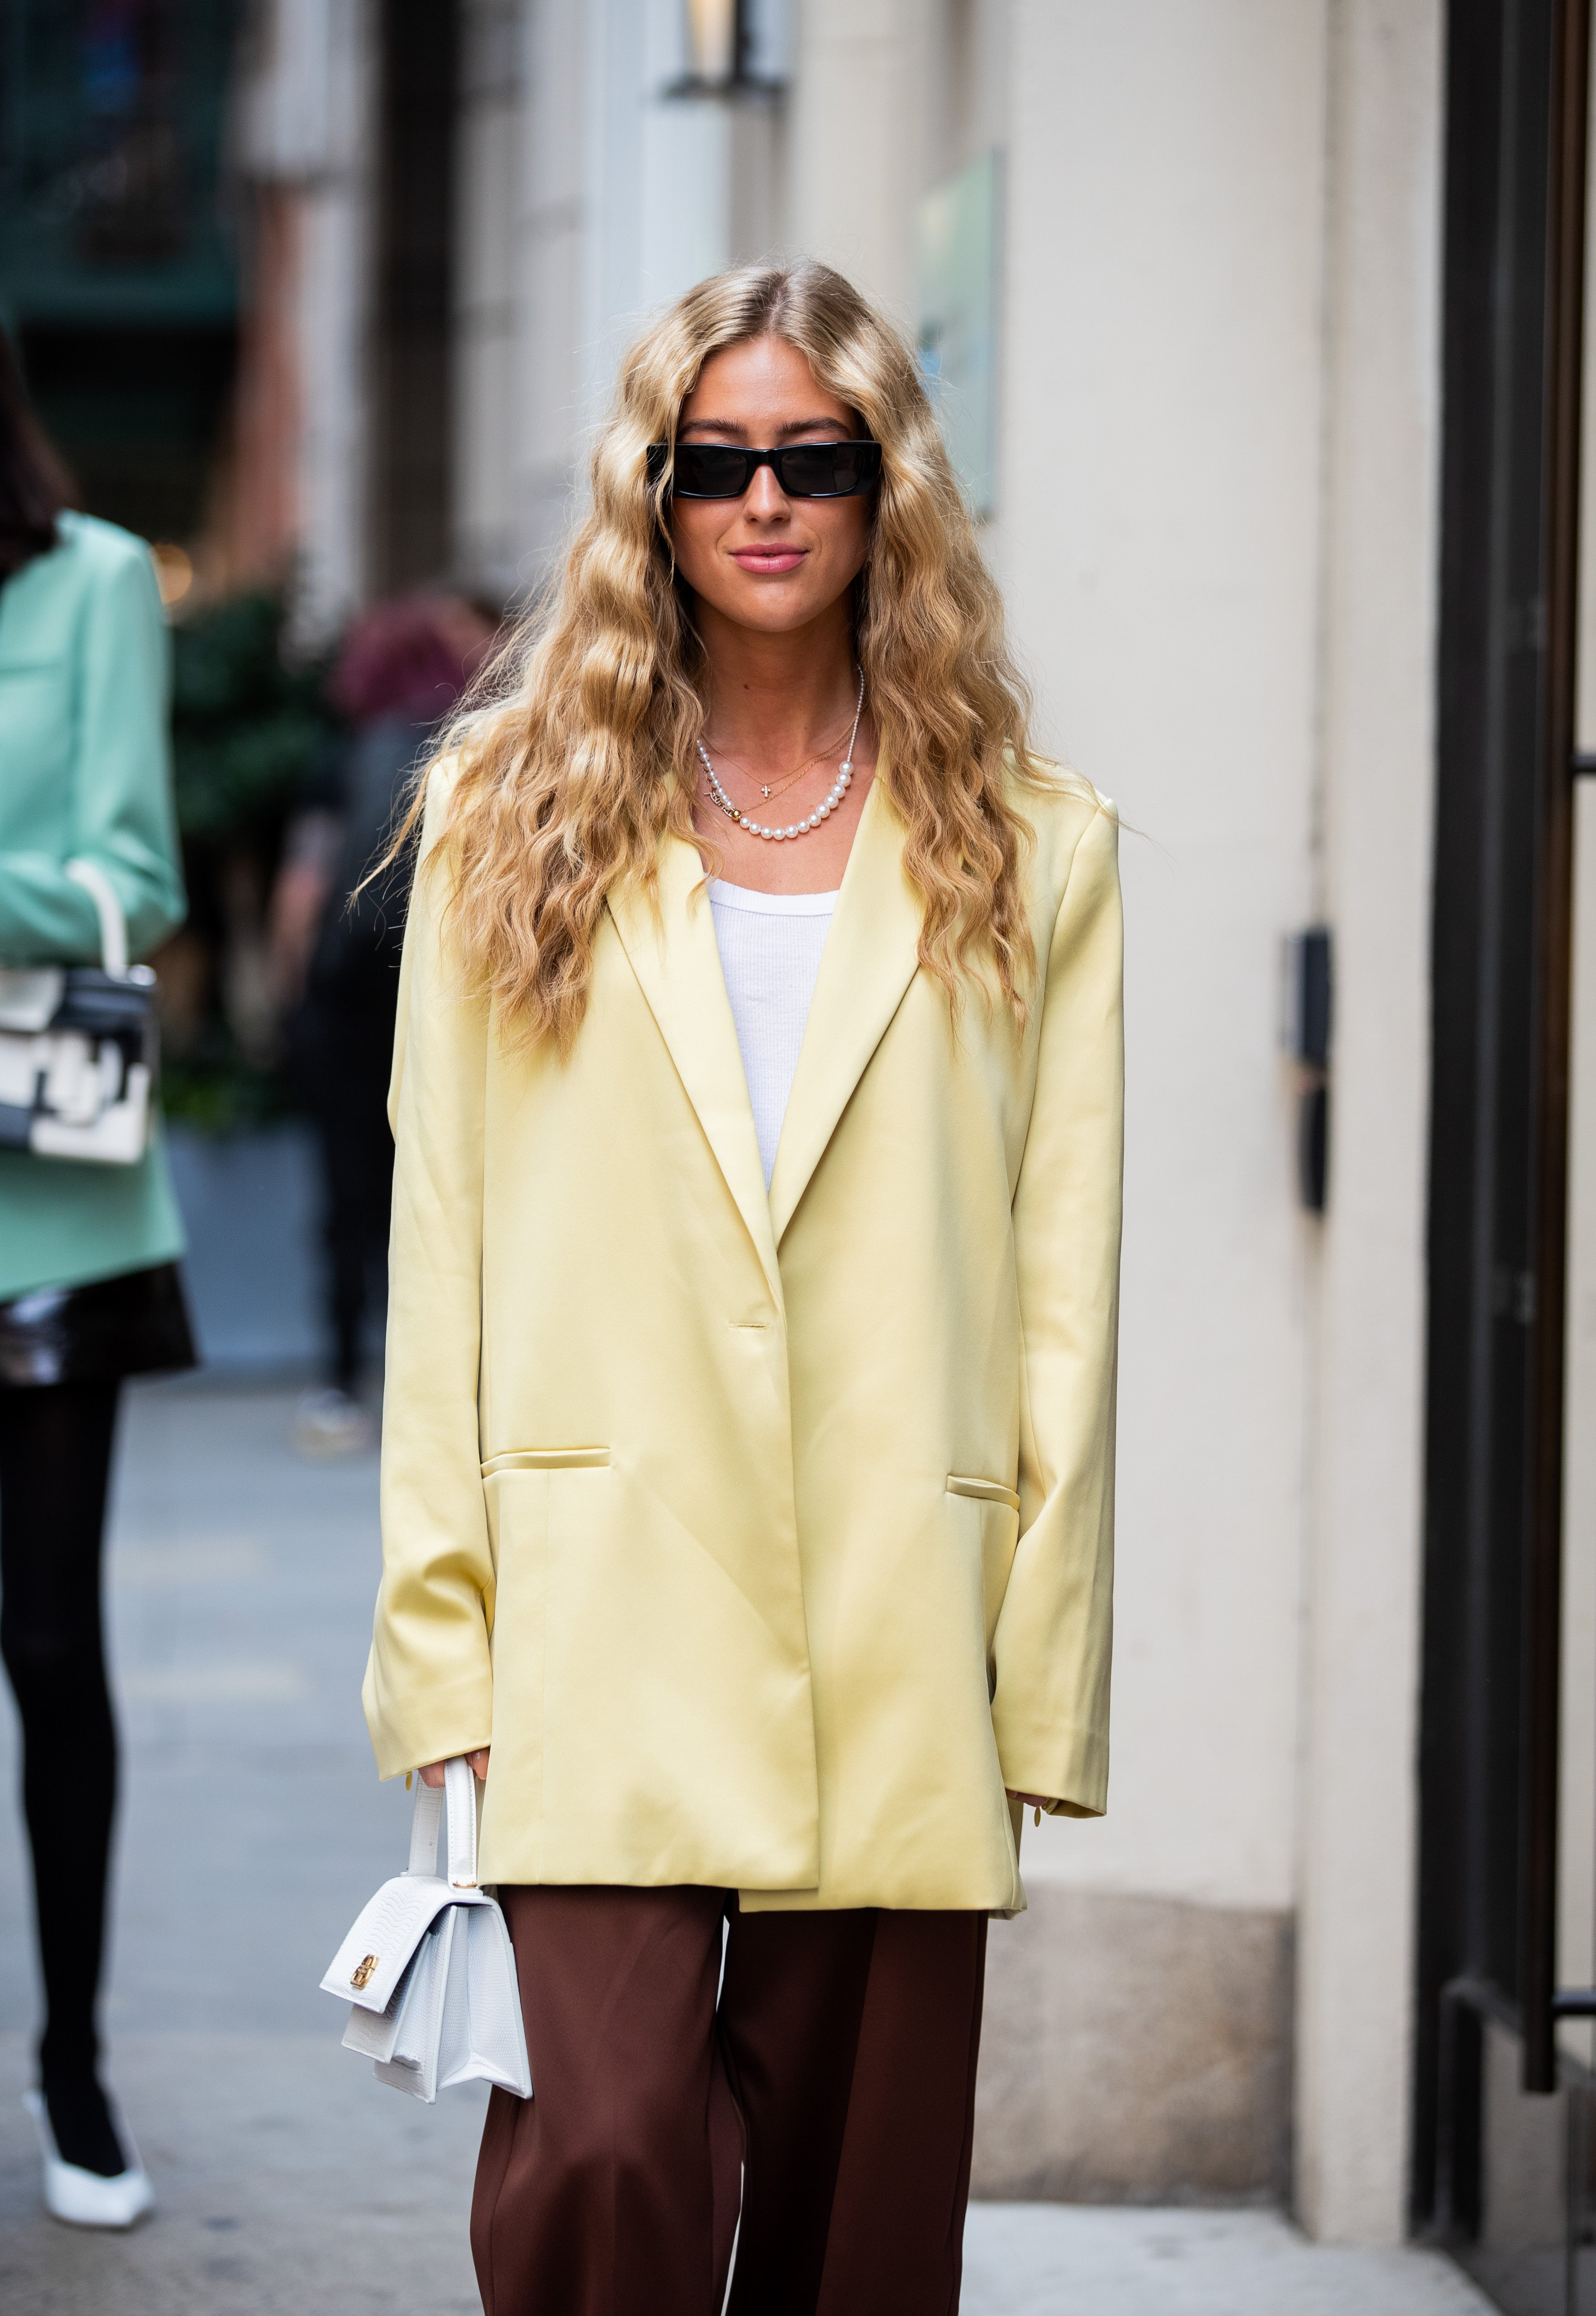 Color Street Winter 2020.New York Fashion Week Street Style Color Trends 2020